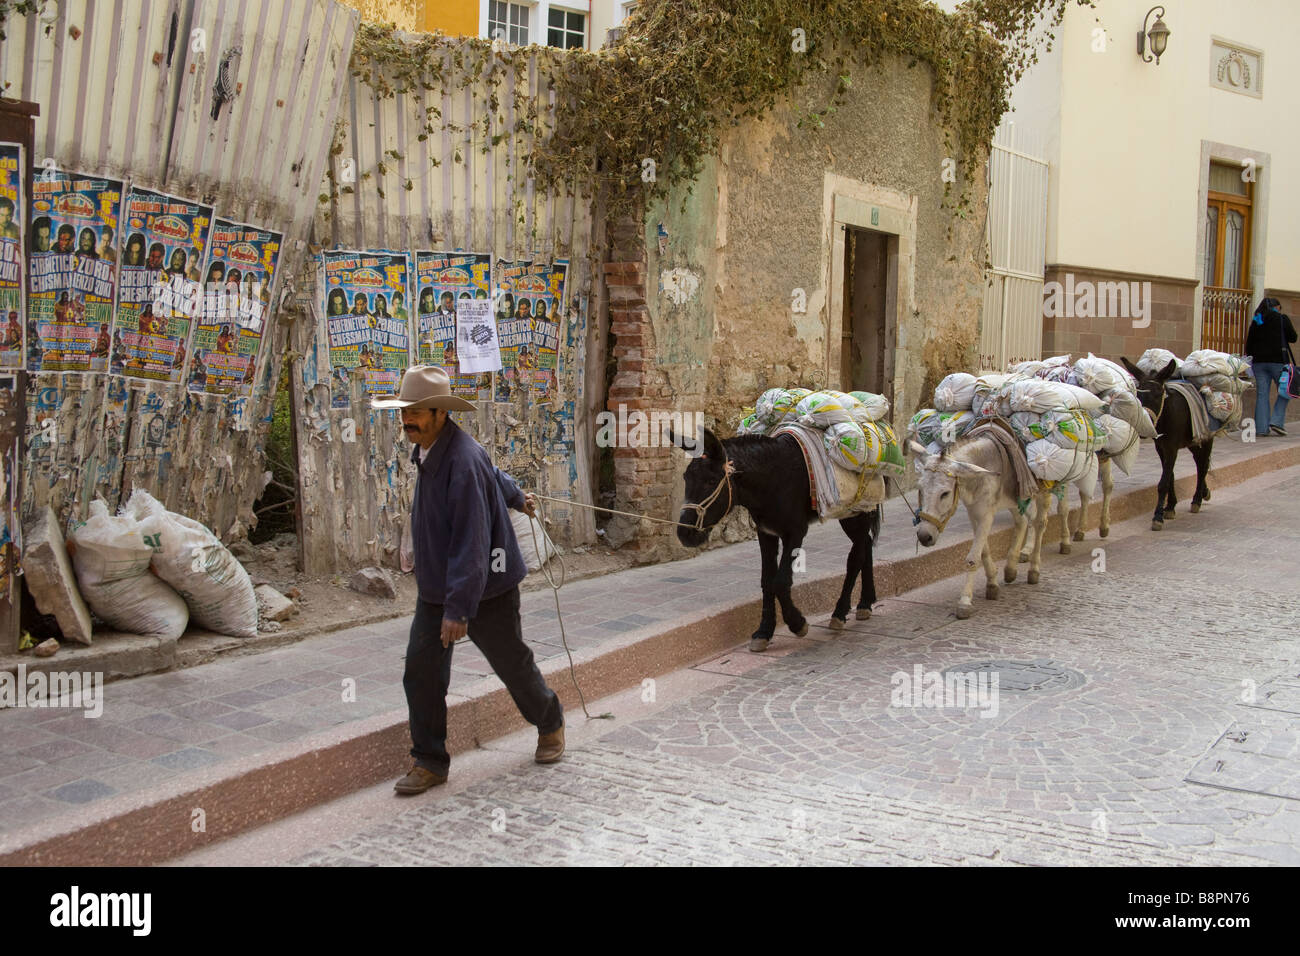 Deliverng Cement by Donkey in Guanajuato, Mexico Stock Photo